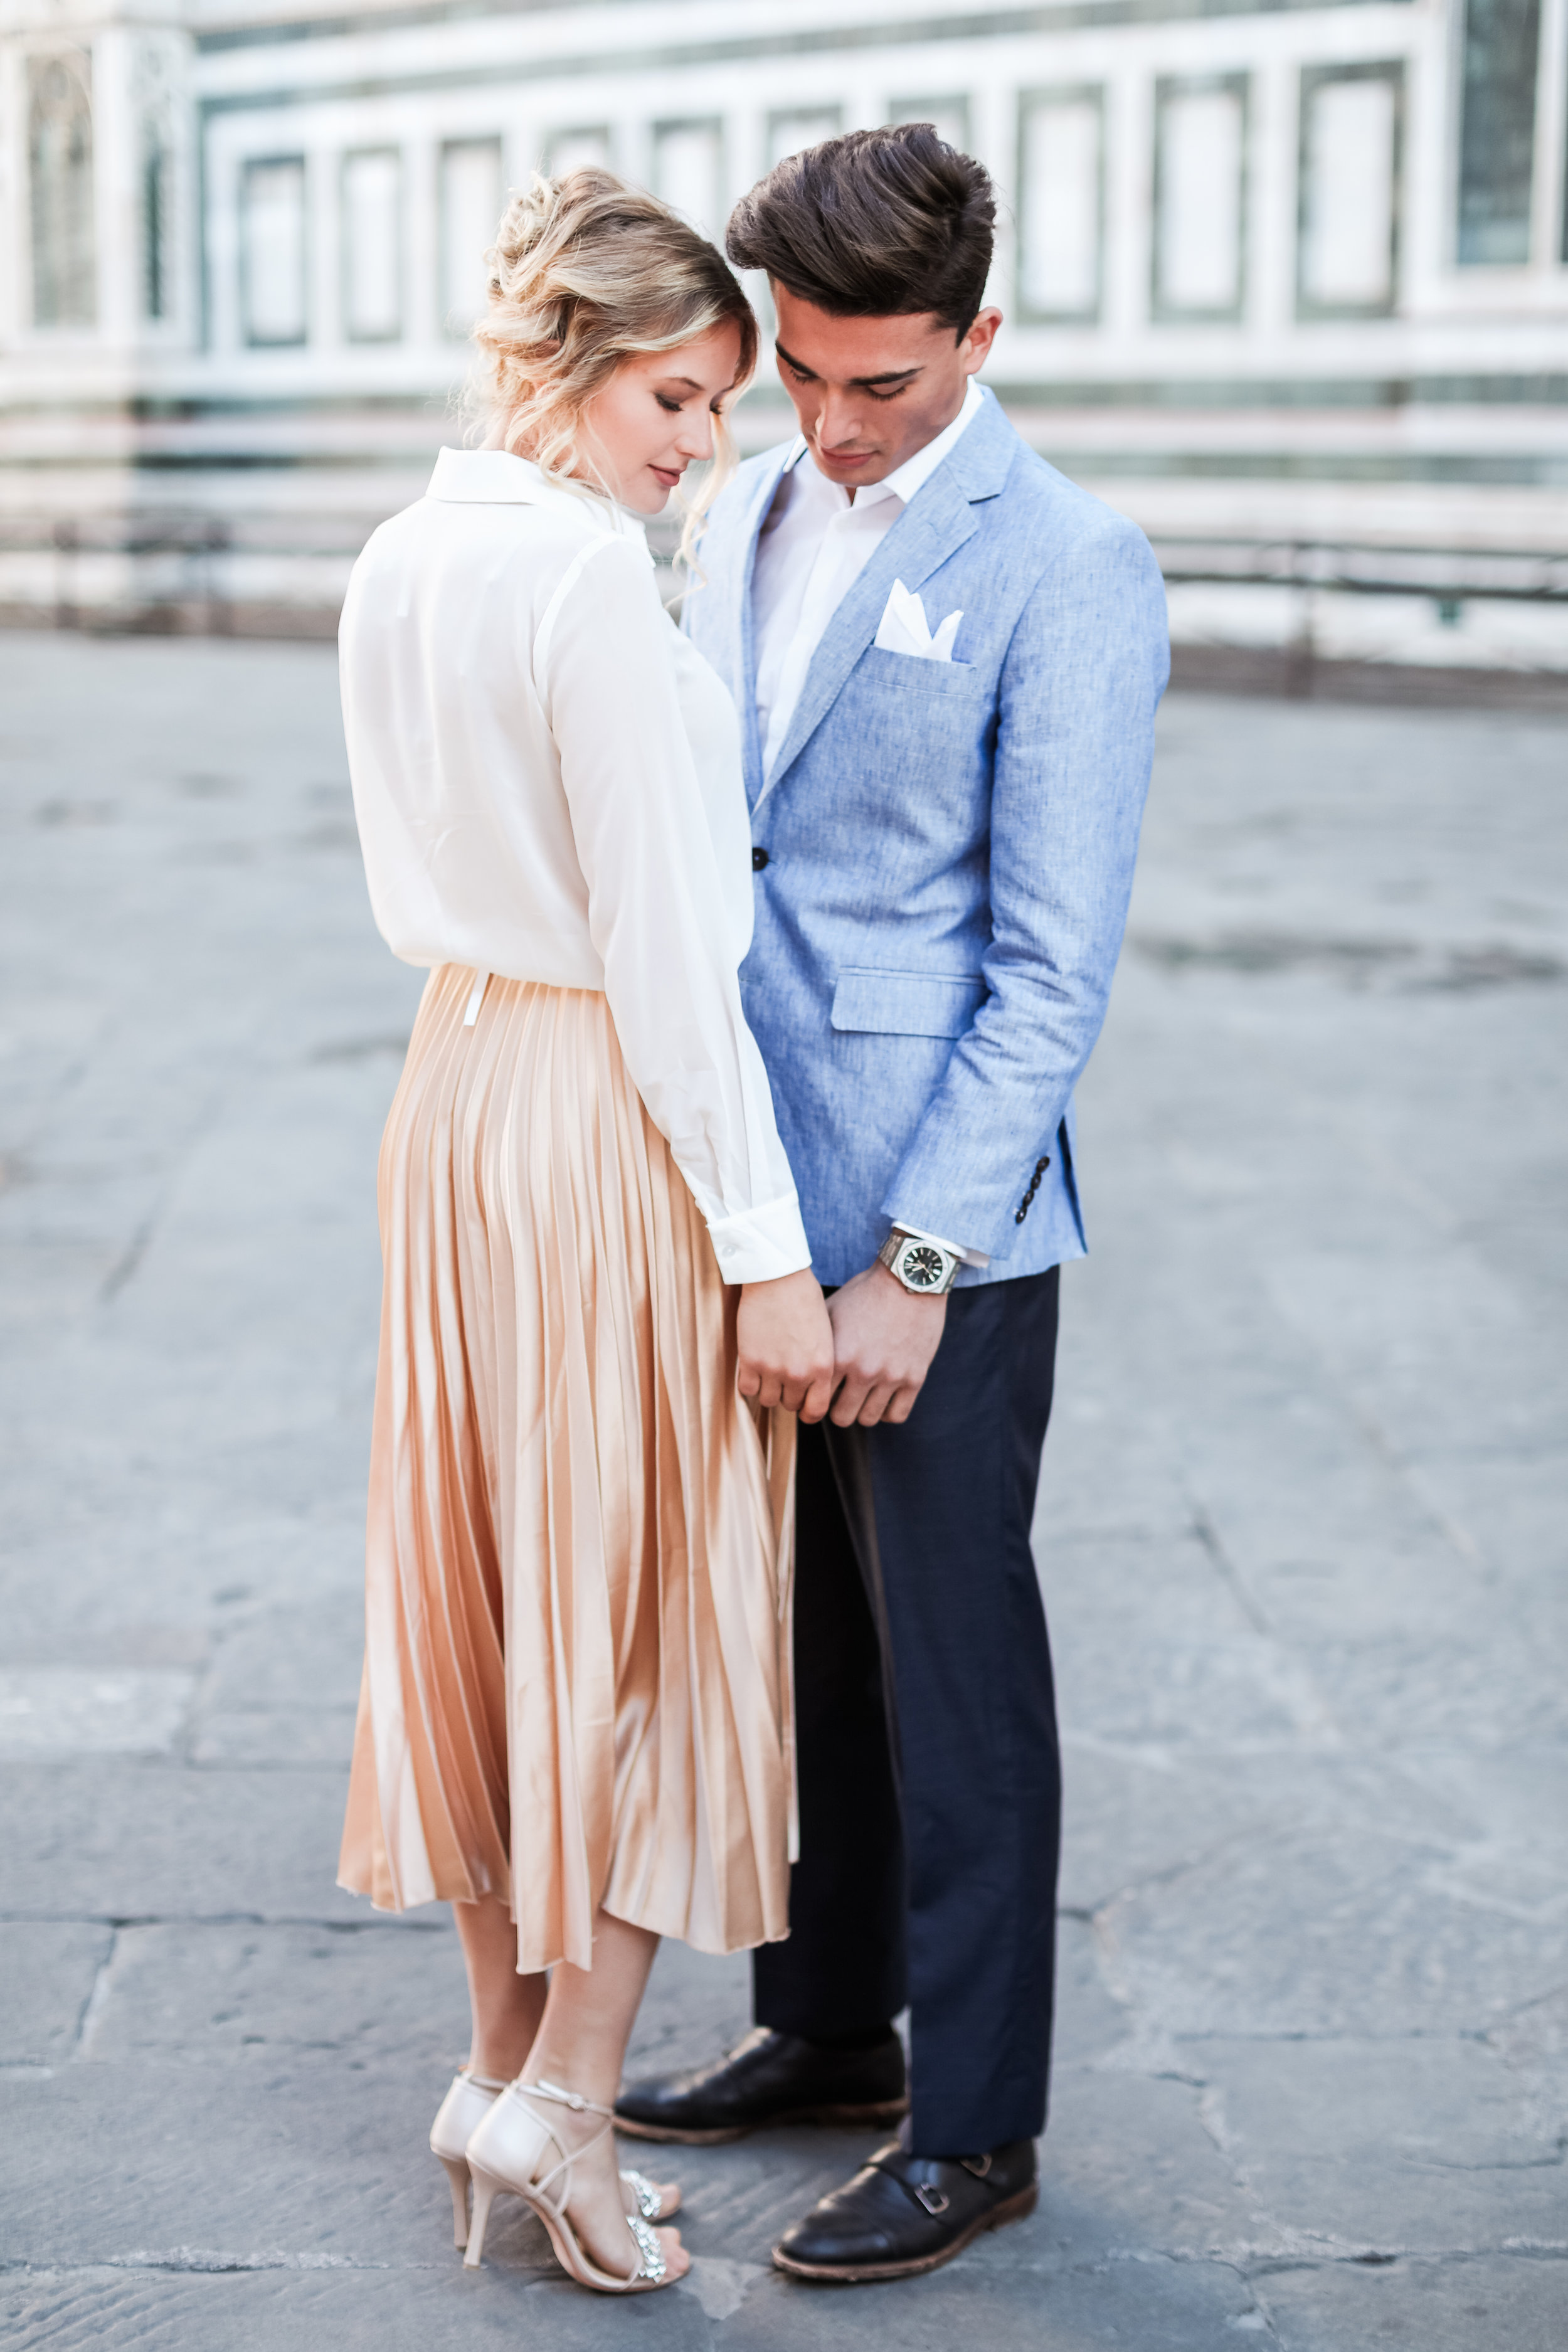 florence-engagement-photography-10.jpg